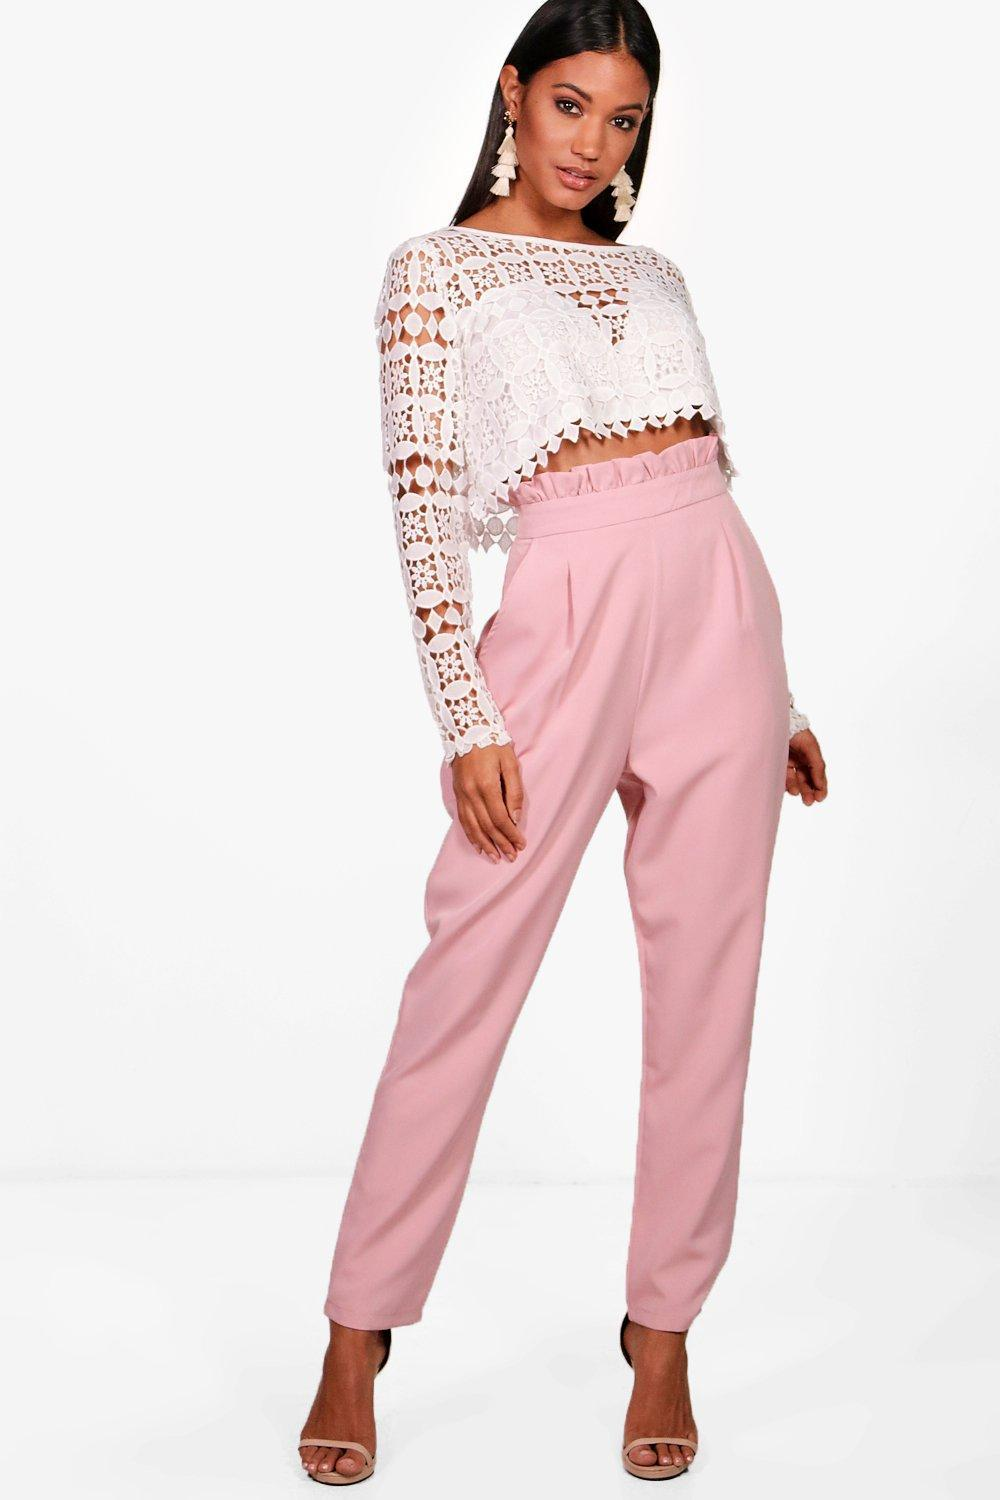 Boohoo Premium Lace Crop   Trouser Co-ord Set in Pink - Lyst 47baed6c3